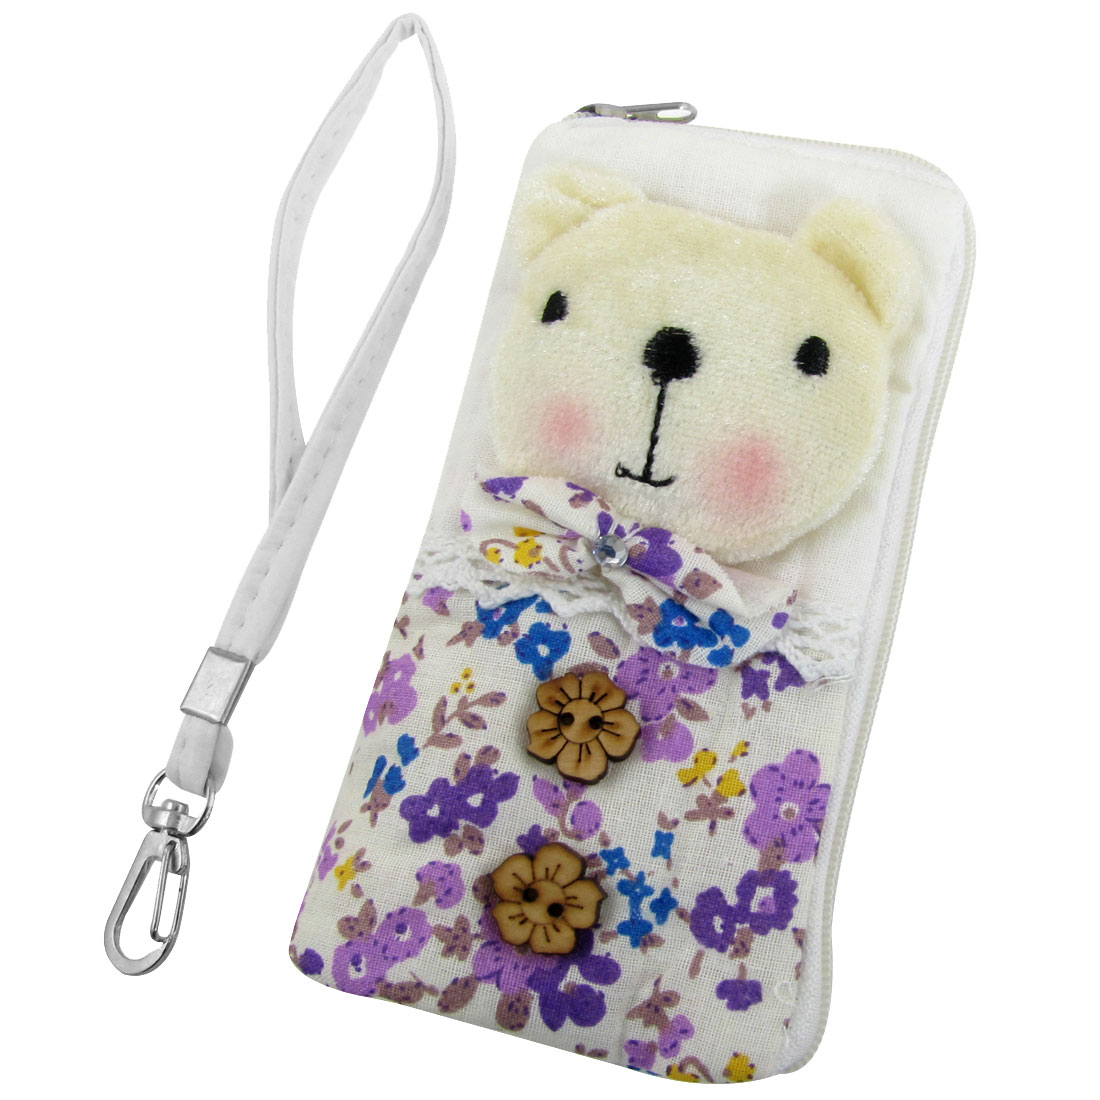 L Shape Zip Closure Bear Decor Pouch Bag Holder w Strap for iPhone 4 4G 4S